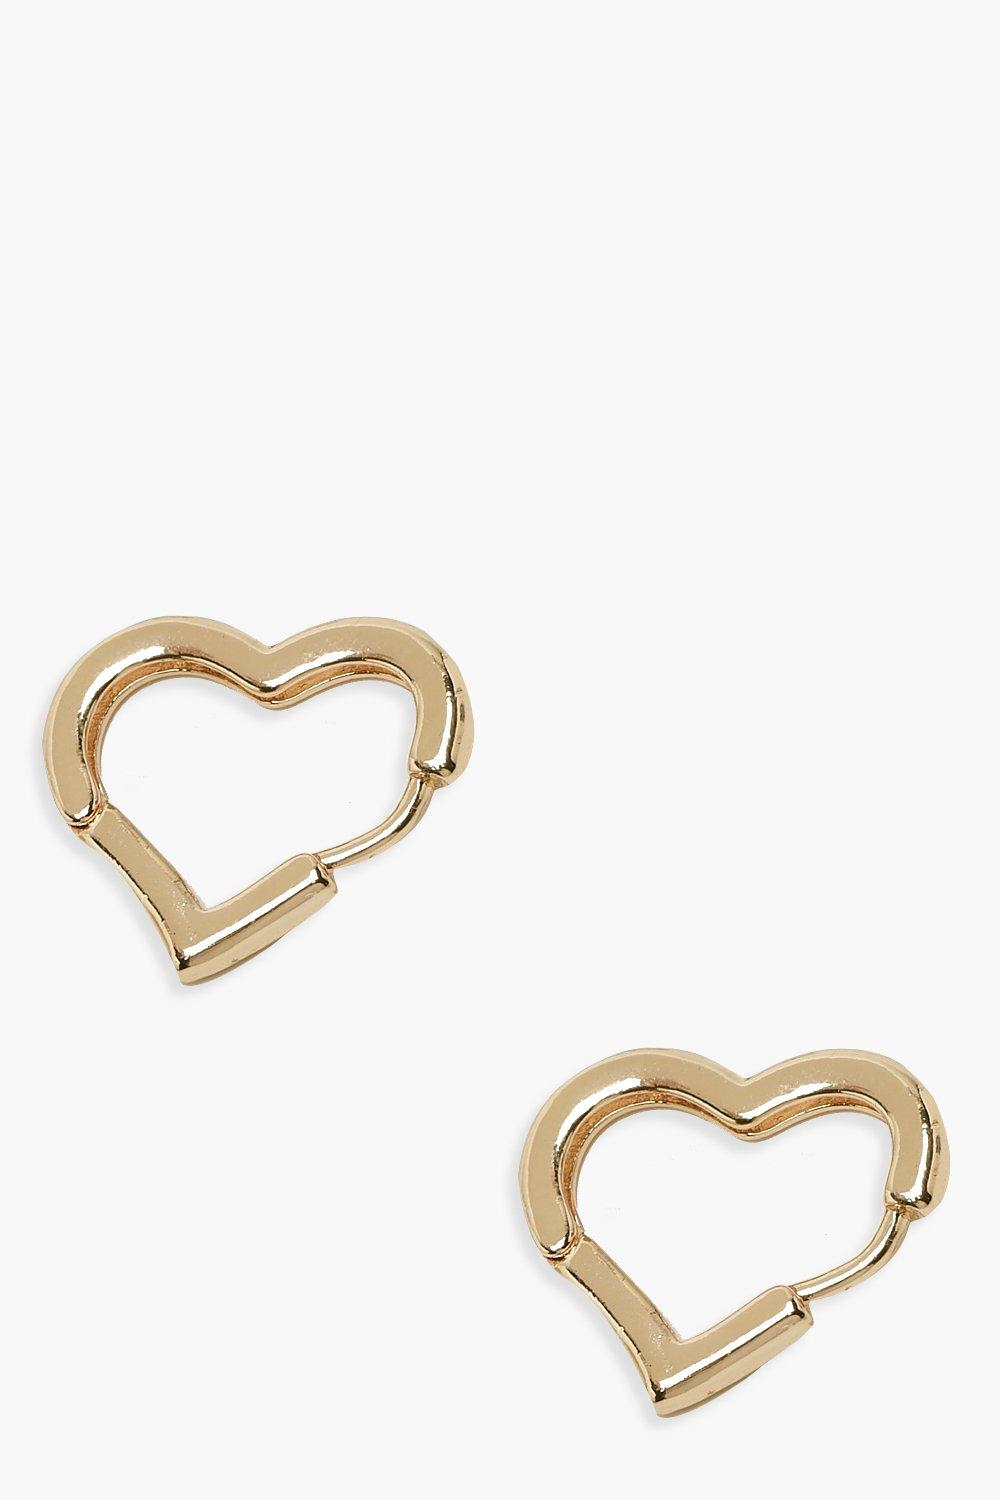 boohoo Womens Plain Heart Huggie Earrings - Metallics - One Size, Metallics